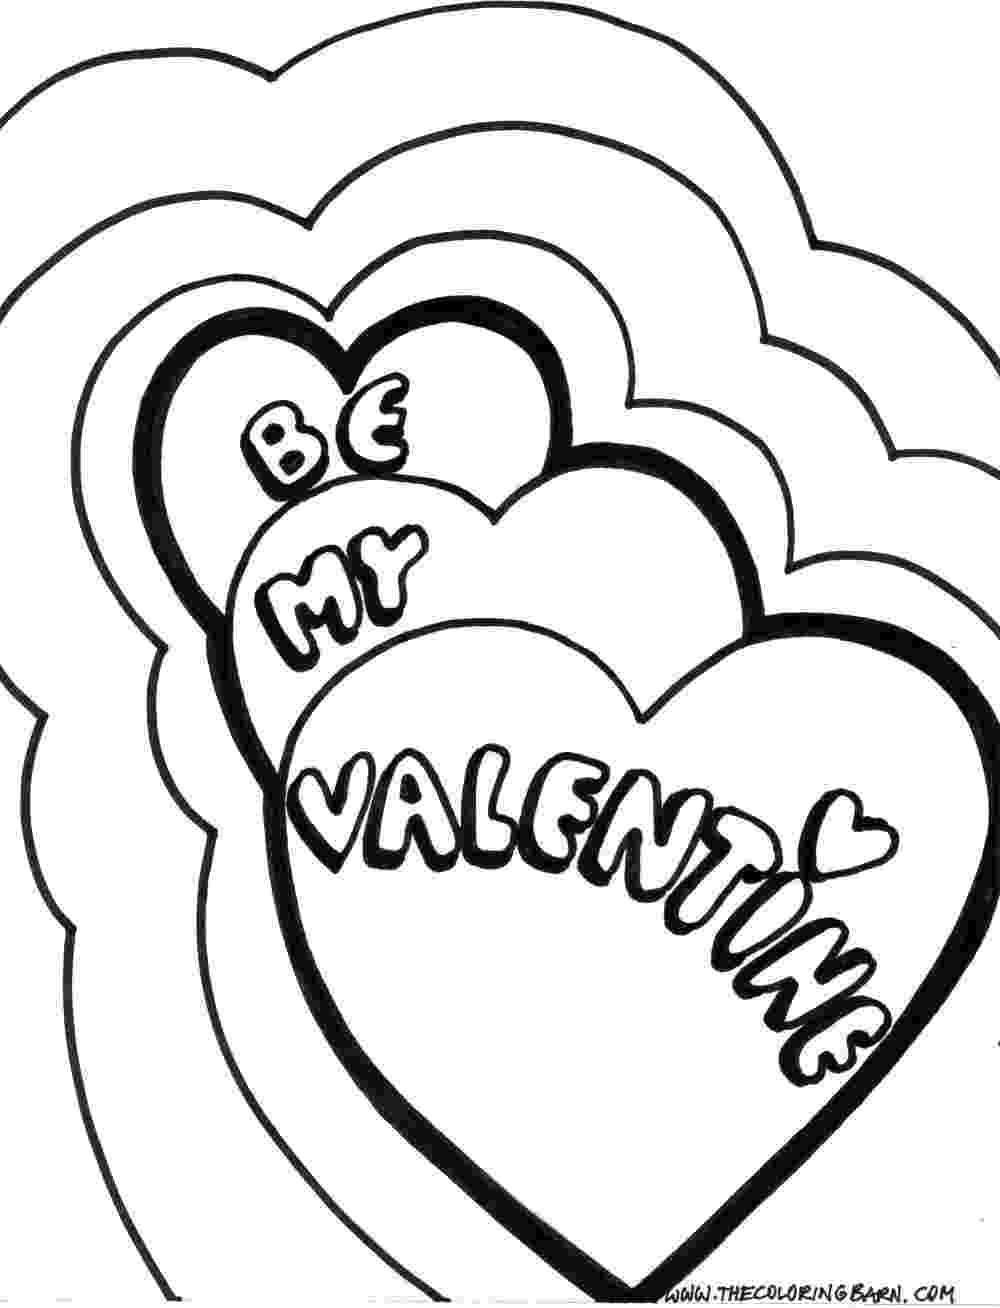 valentines day coloring sheets 4 free valentine39s day coloring pages for kids valentines day coloring sheets